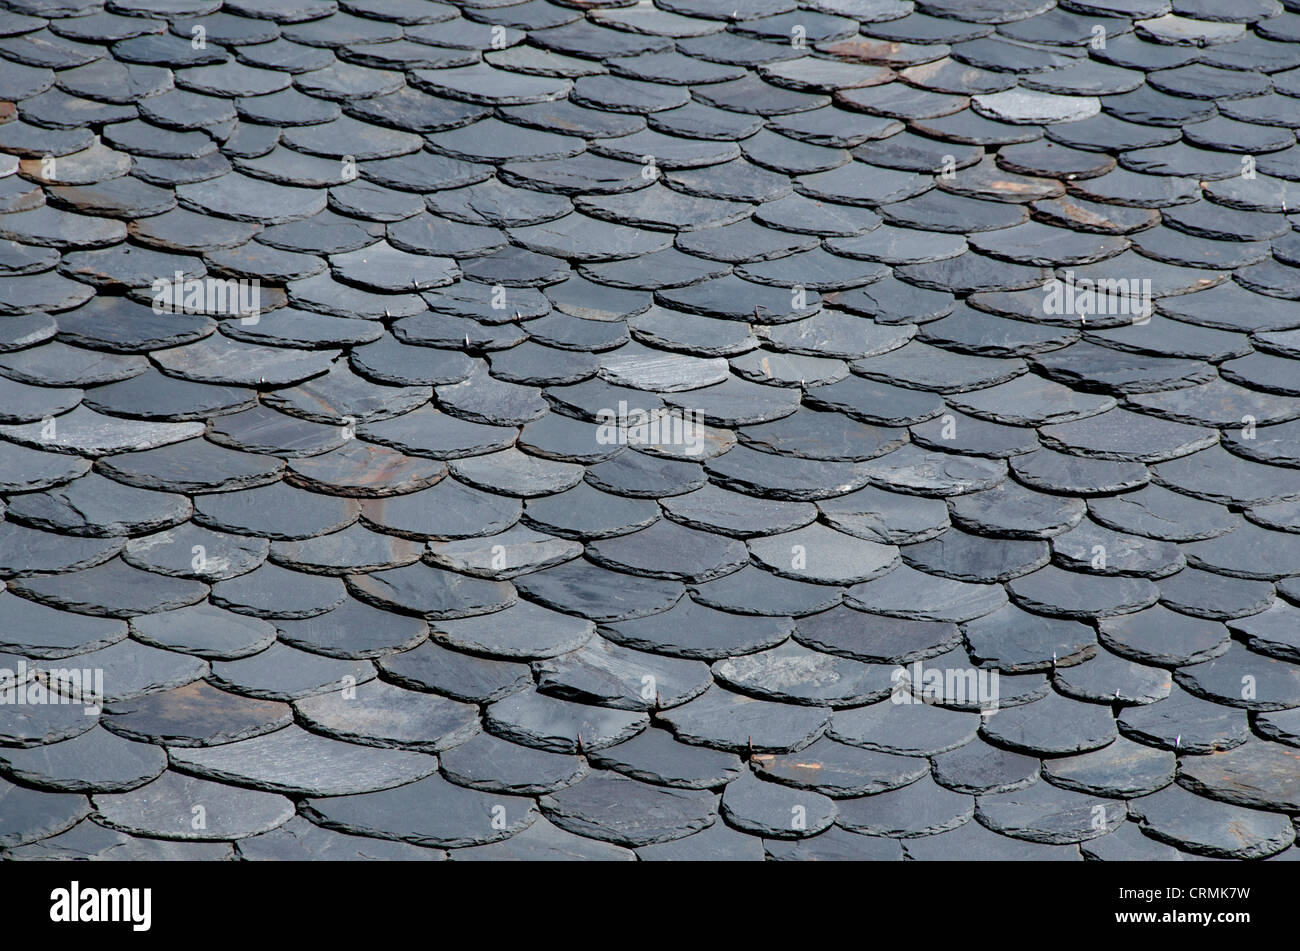 Traditional slate roof in Auvergne, France - Stock Image